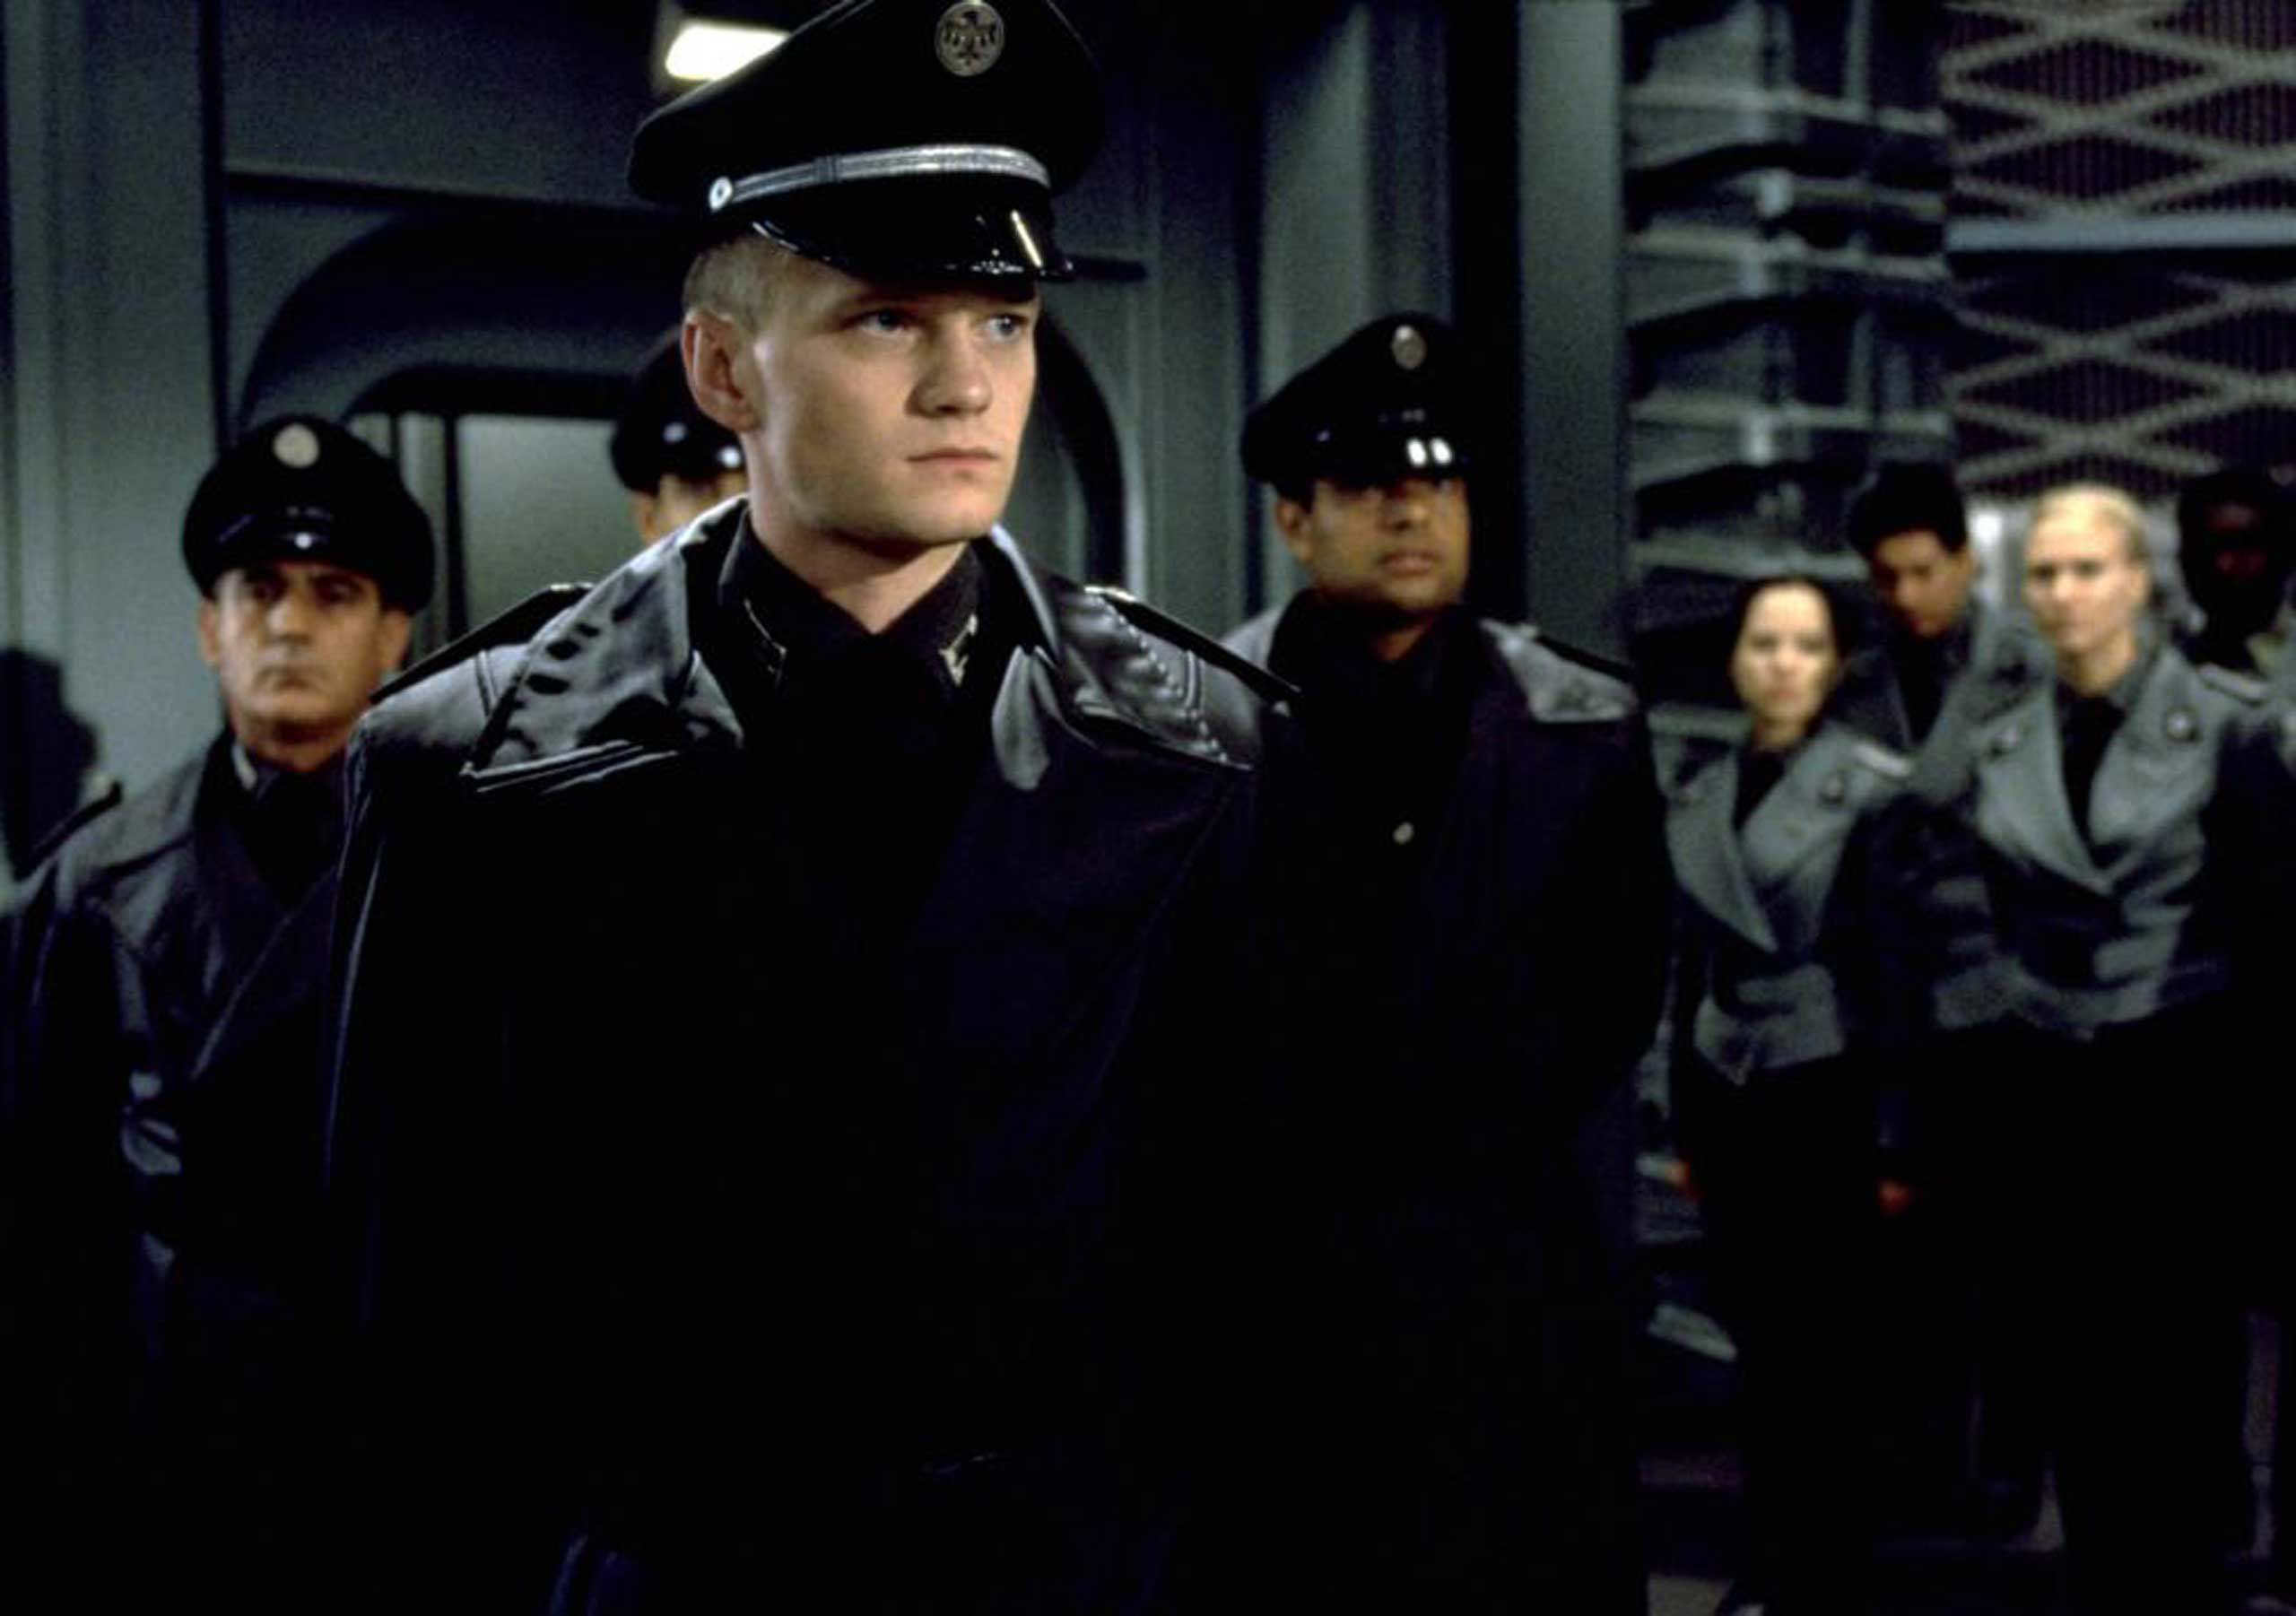 Neil Patrick Harris battled giant alien bugs (yes, really) in the militaristic sci-fi movie Starship Troopers in 1997.